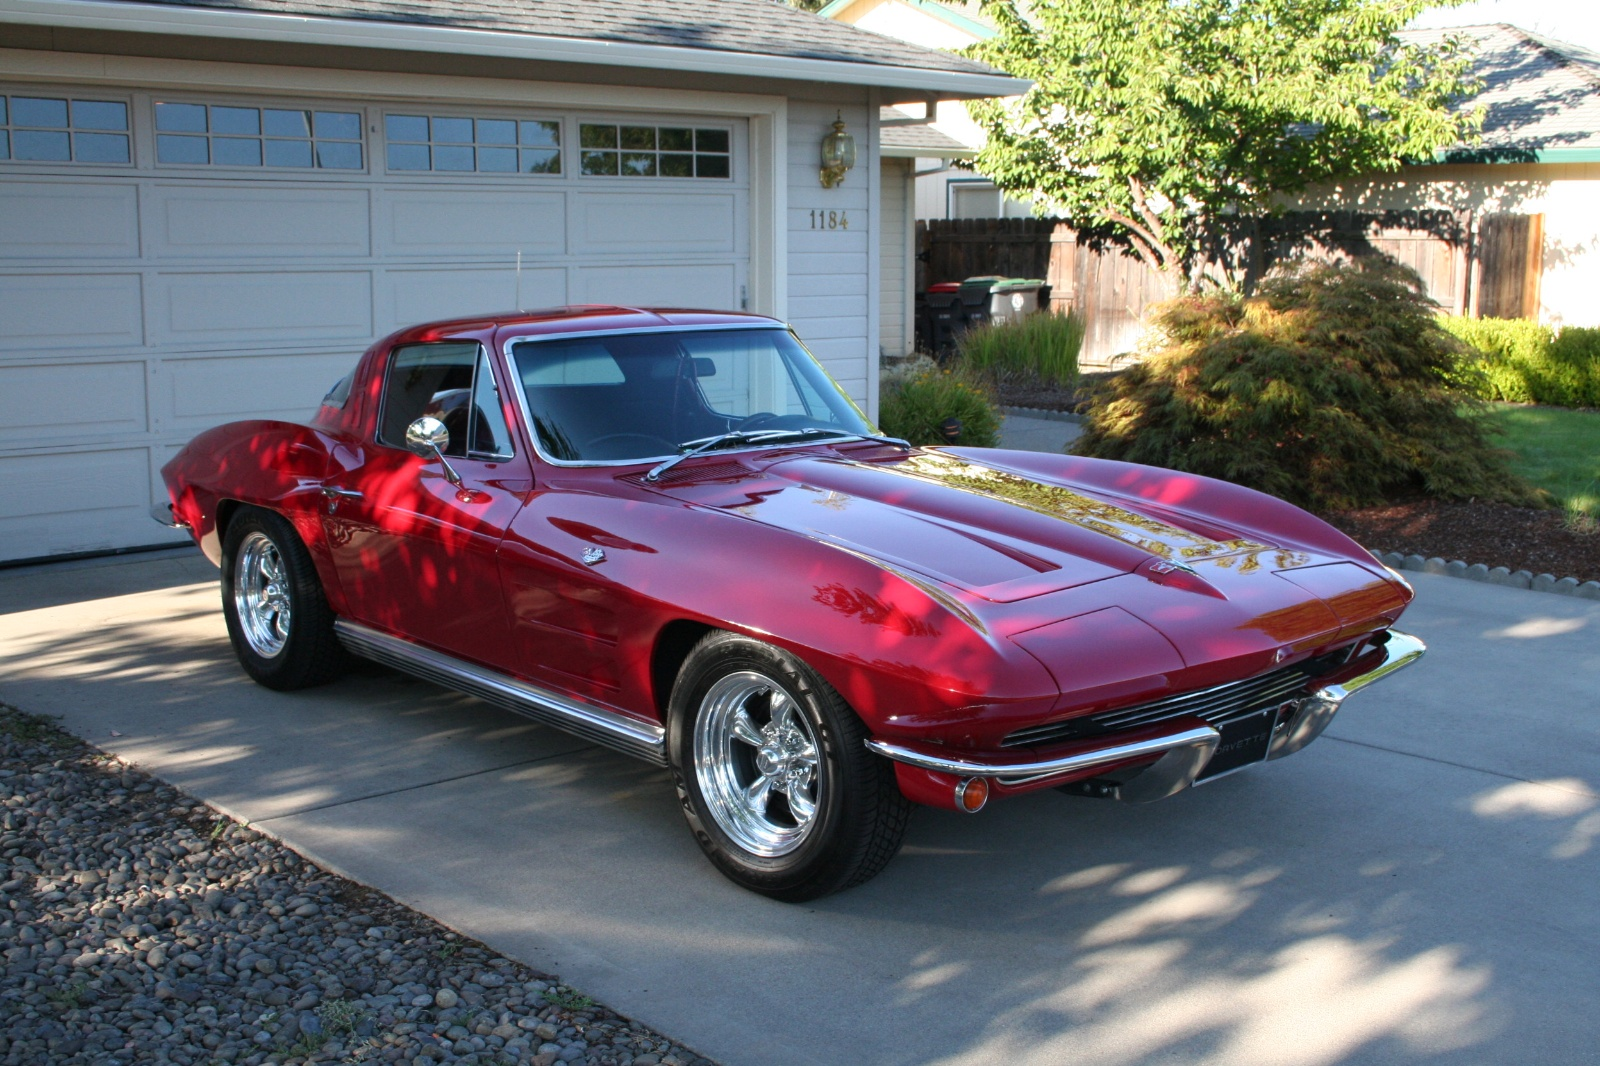 Corvette 1964 chevrolet corvette : EAT WITH ME: A LOOK BACK AT 50 YEARS OF BAD ASS CARS...1964 TO 2014.